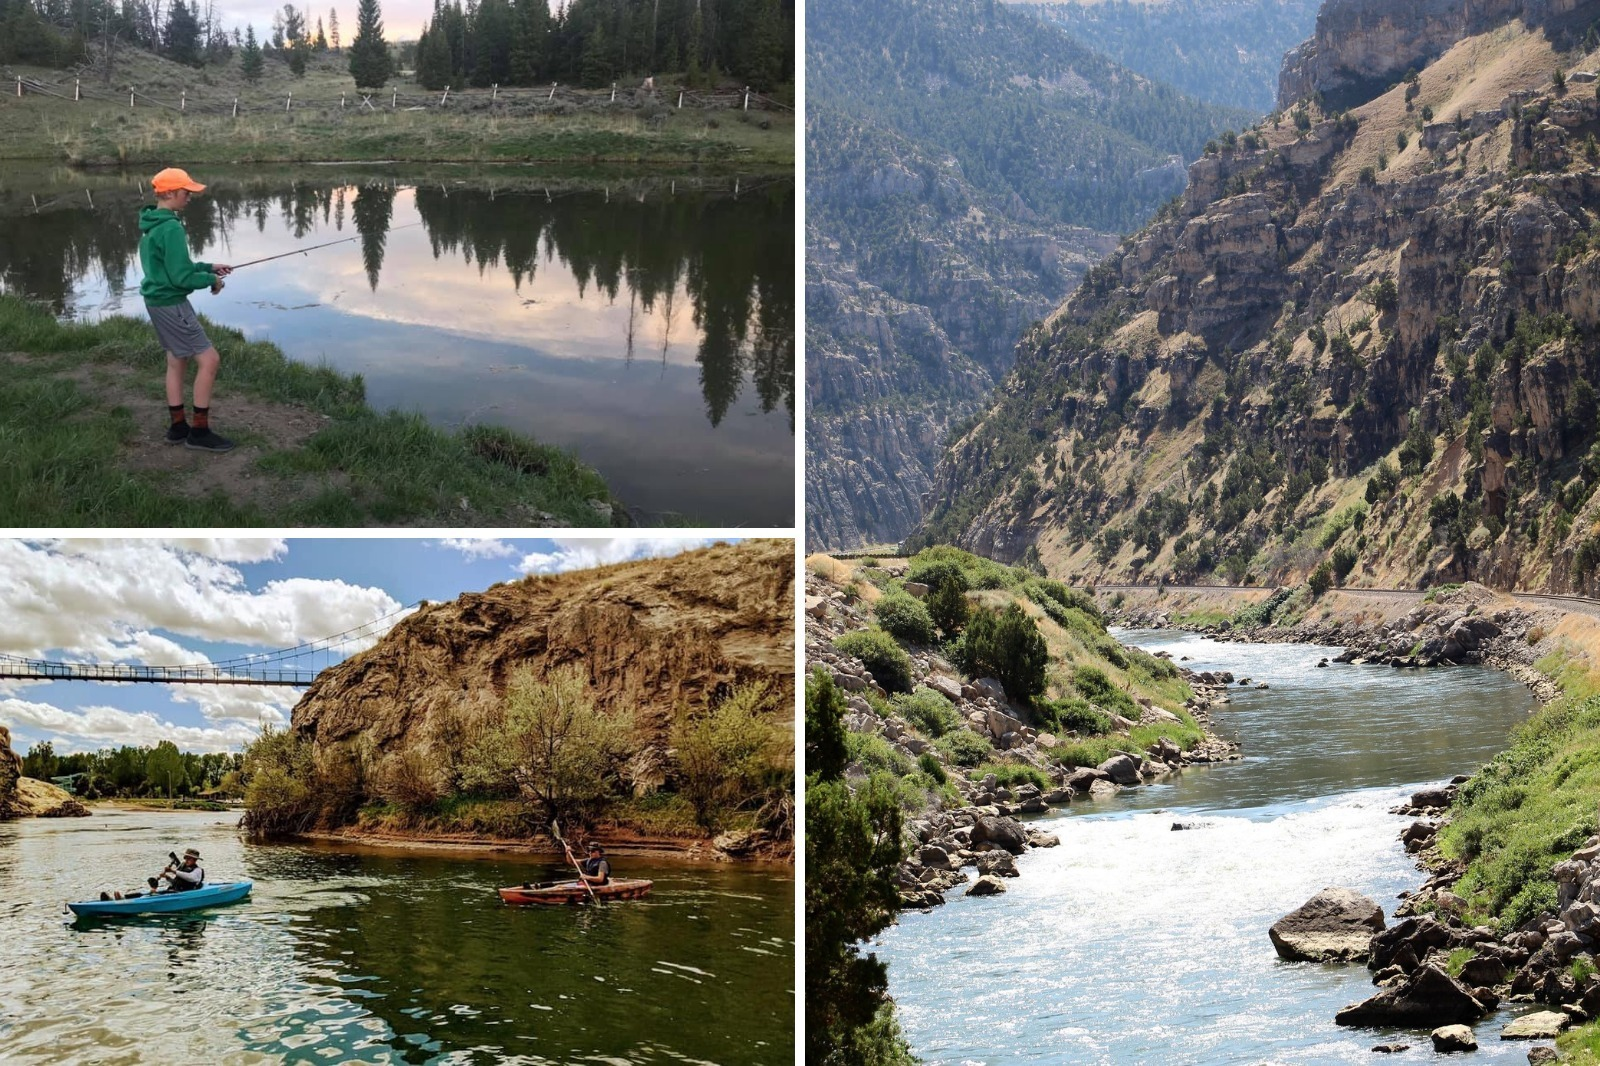 Collage of fishing and water sports pictures in Hot Springs County, Wyoming